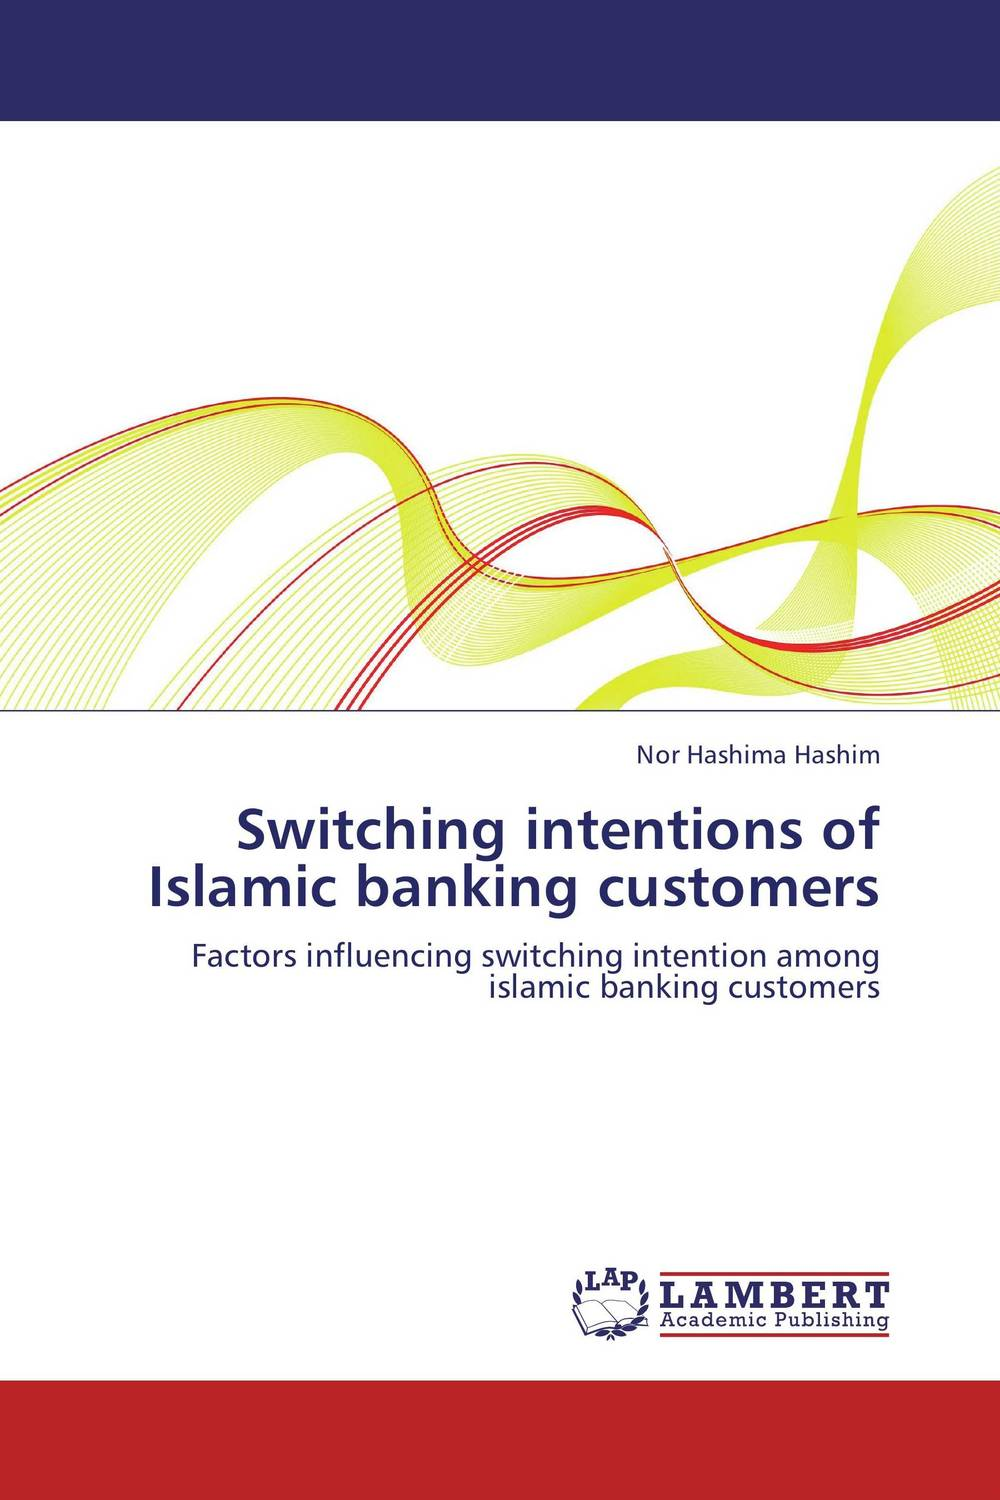 Switching intentions of Islamic banking customers sharma r the rise and fall of nations ten rules of change in the post crisis world